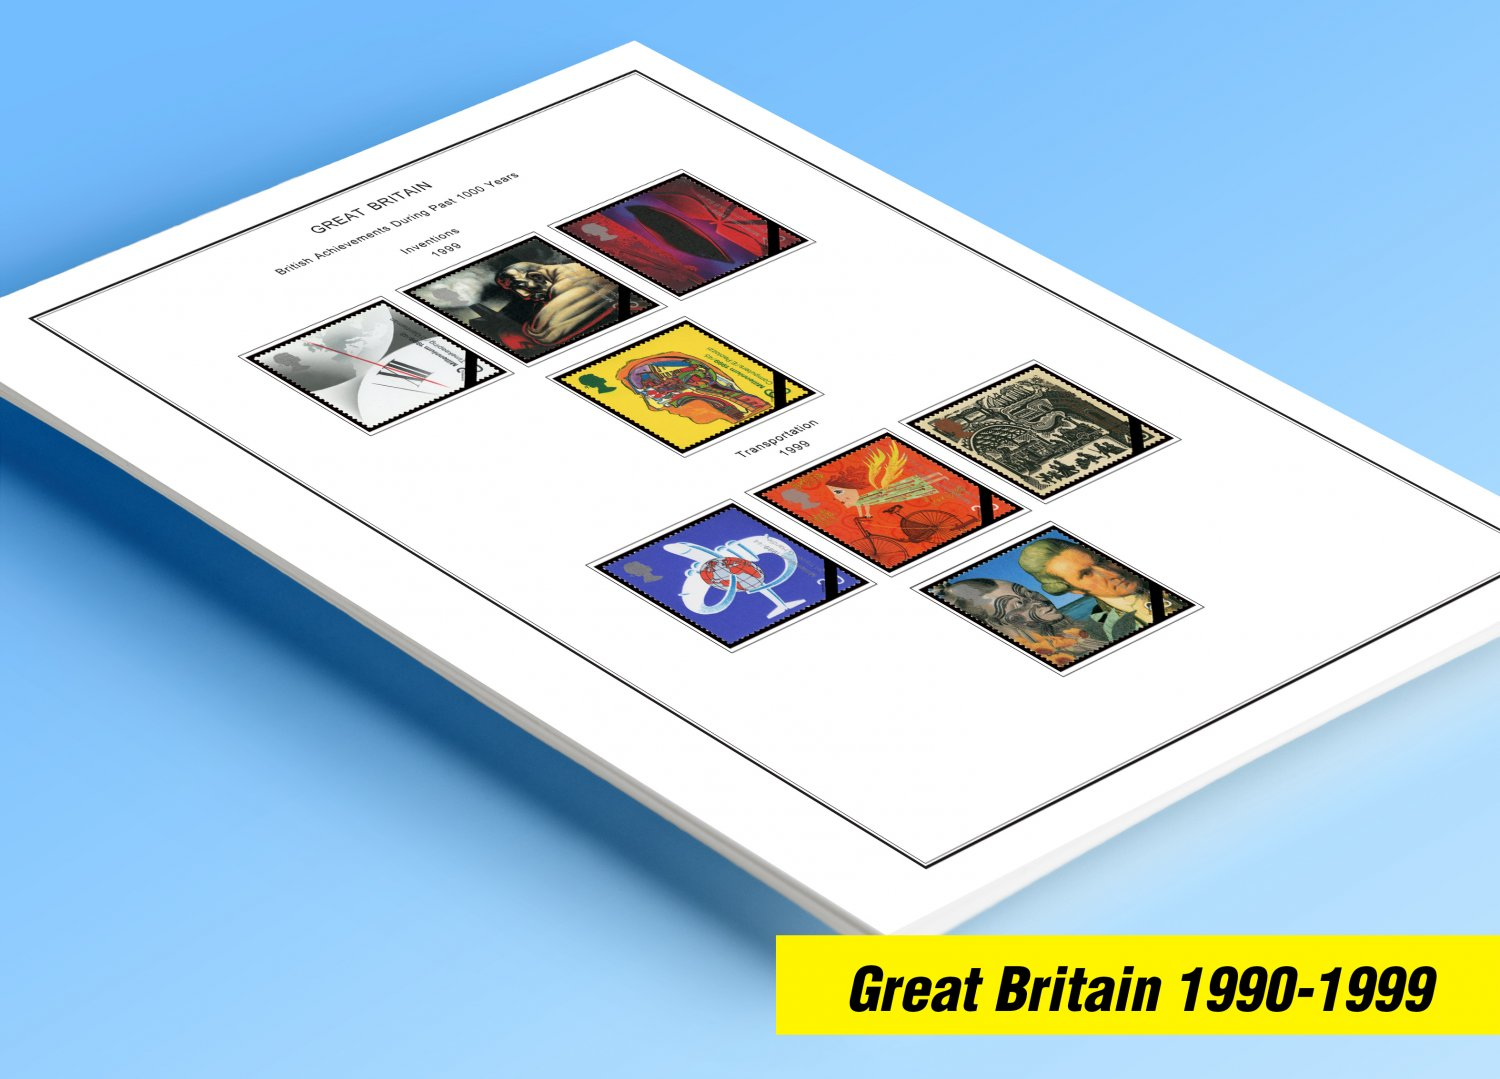 COLOR PRINTED GREAT BRITAIN 1990-1999 STAMP ALBUM PAGES (58 illustrated pages)